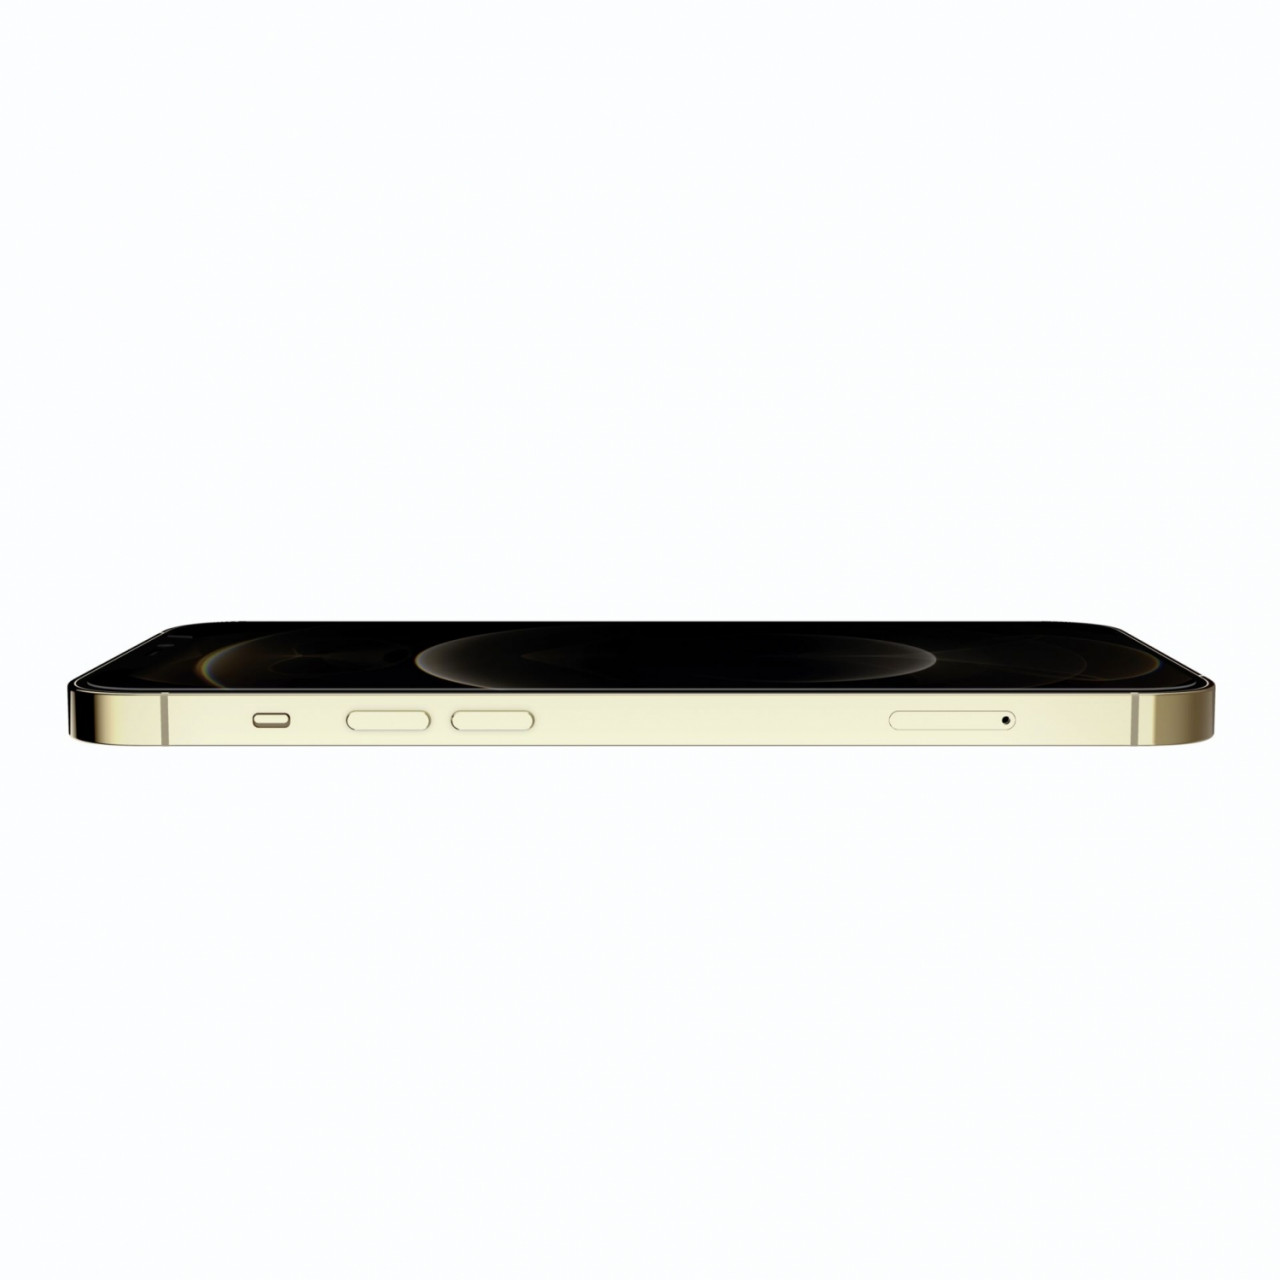 Belkin ScreenForce TemperedGlass Privacy iPhone 12ProMax OVA031zz